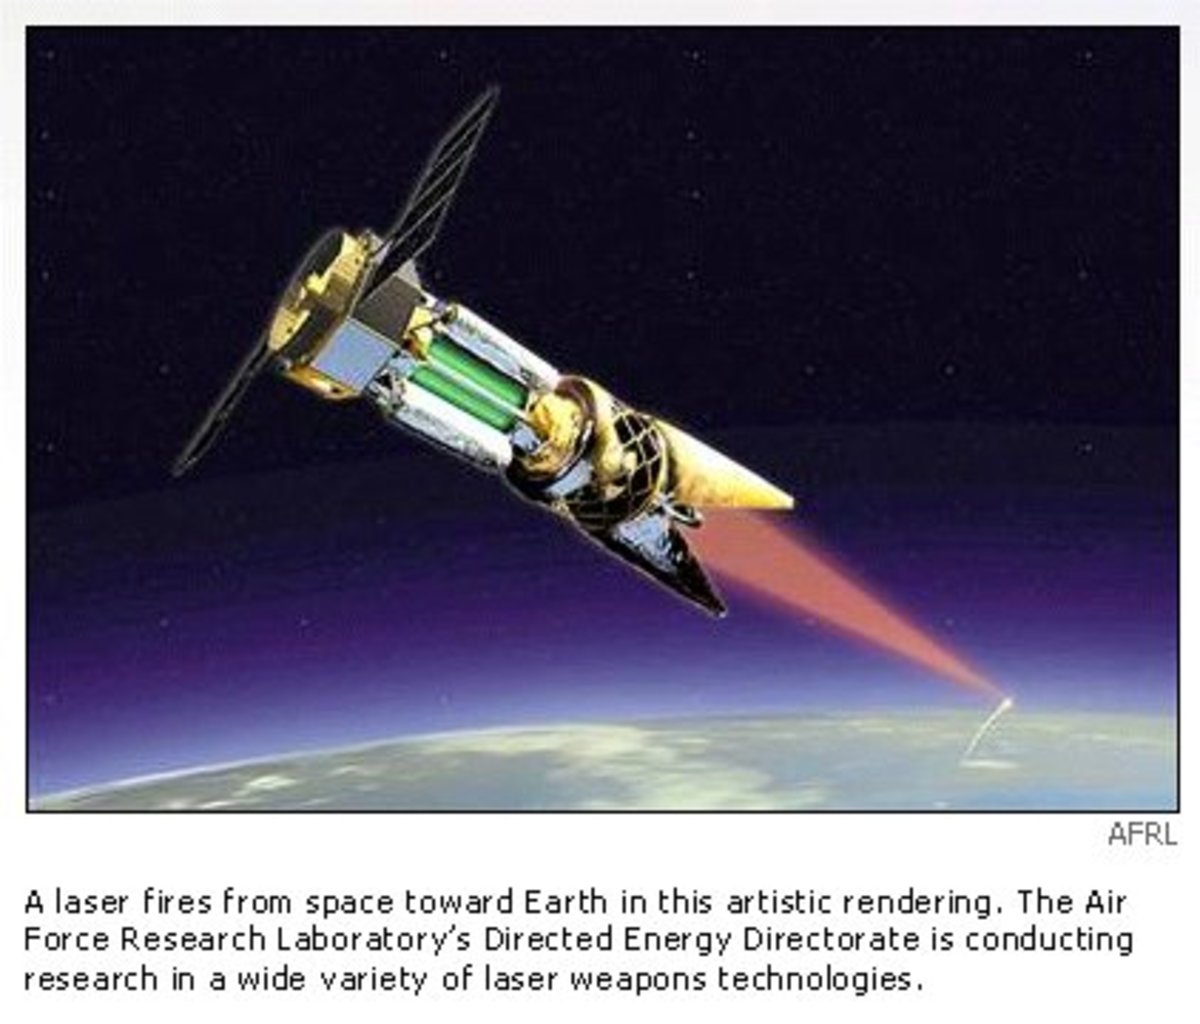 space born lasers are another form of beamed weapon. However, a laser in space can be used for peaceful purposes such as energy transfer for power generation, or a remote fuel source for interplanetary vehicles. EMP beams however can only be used eit